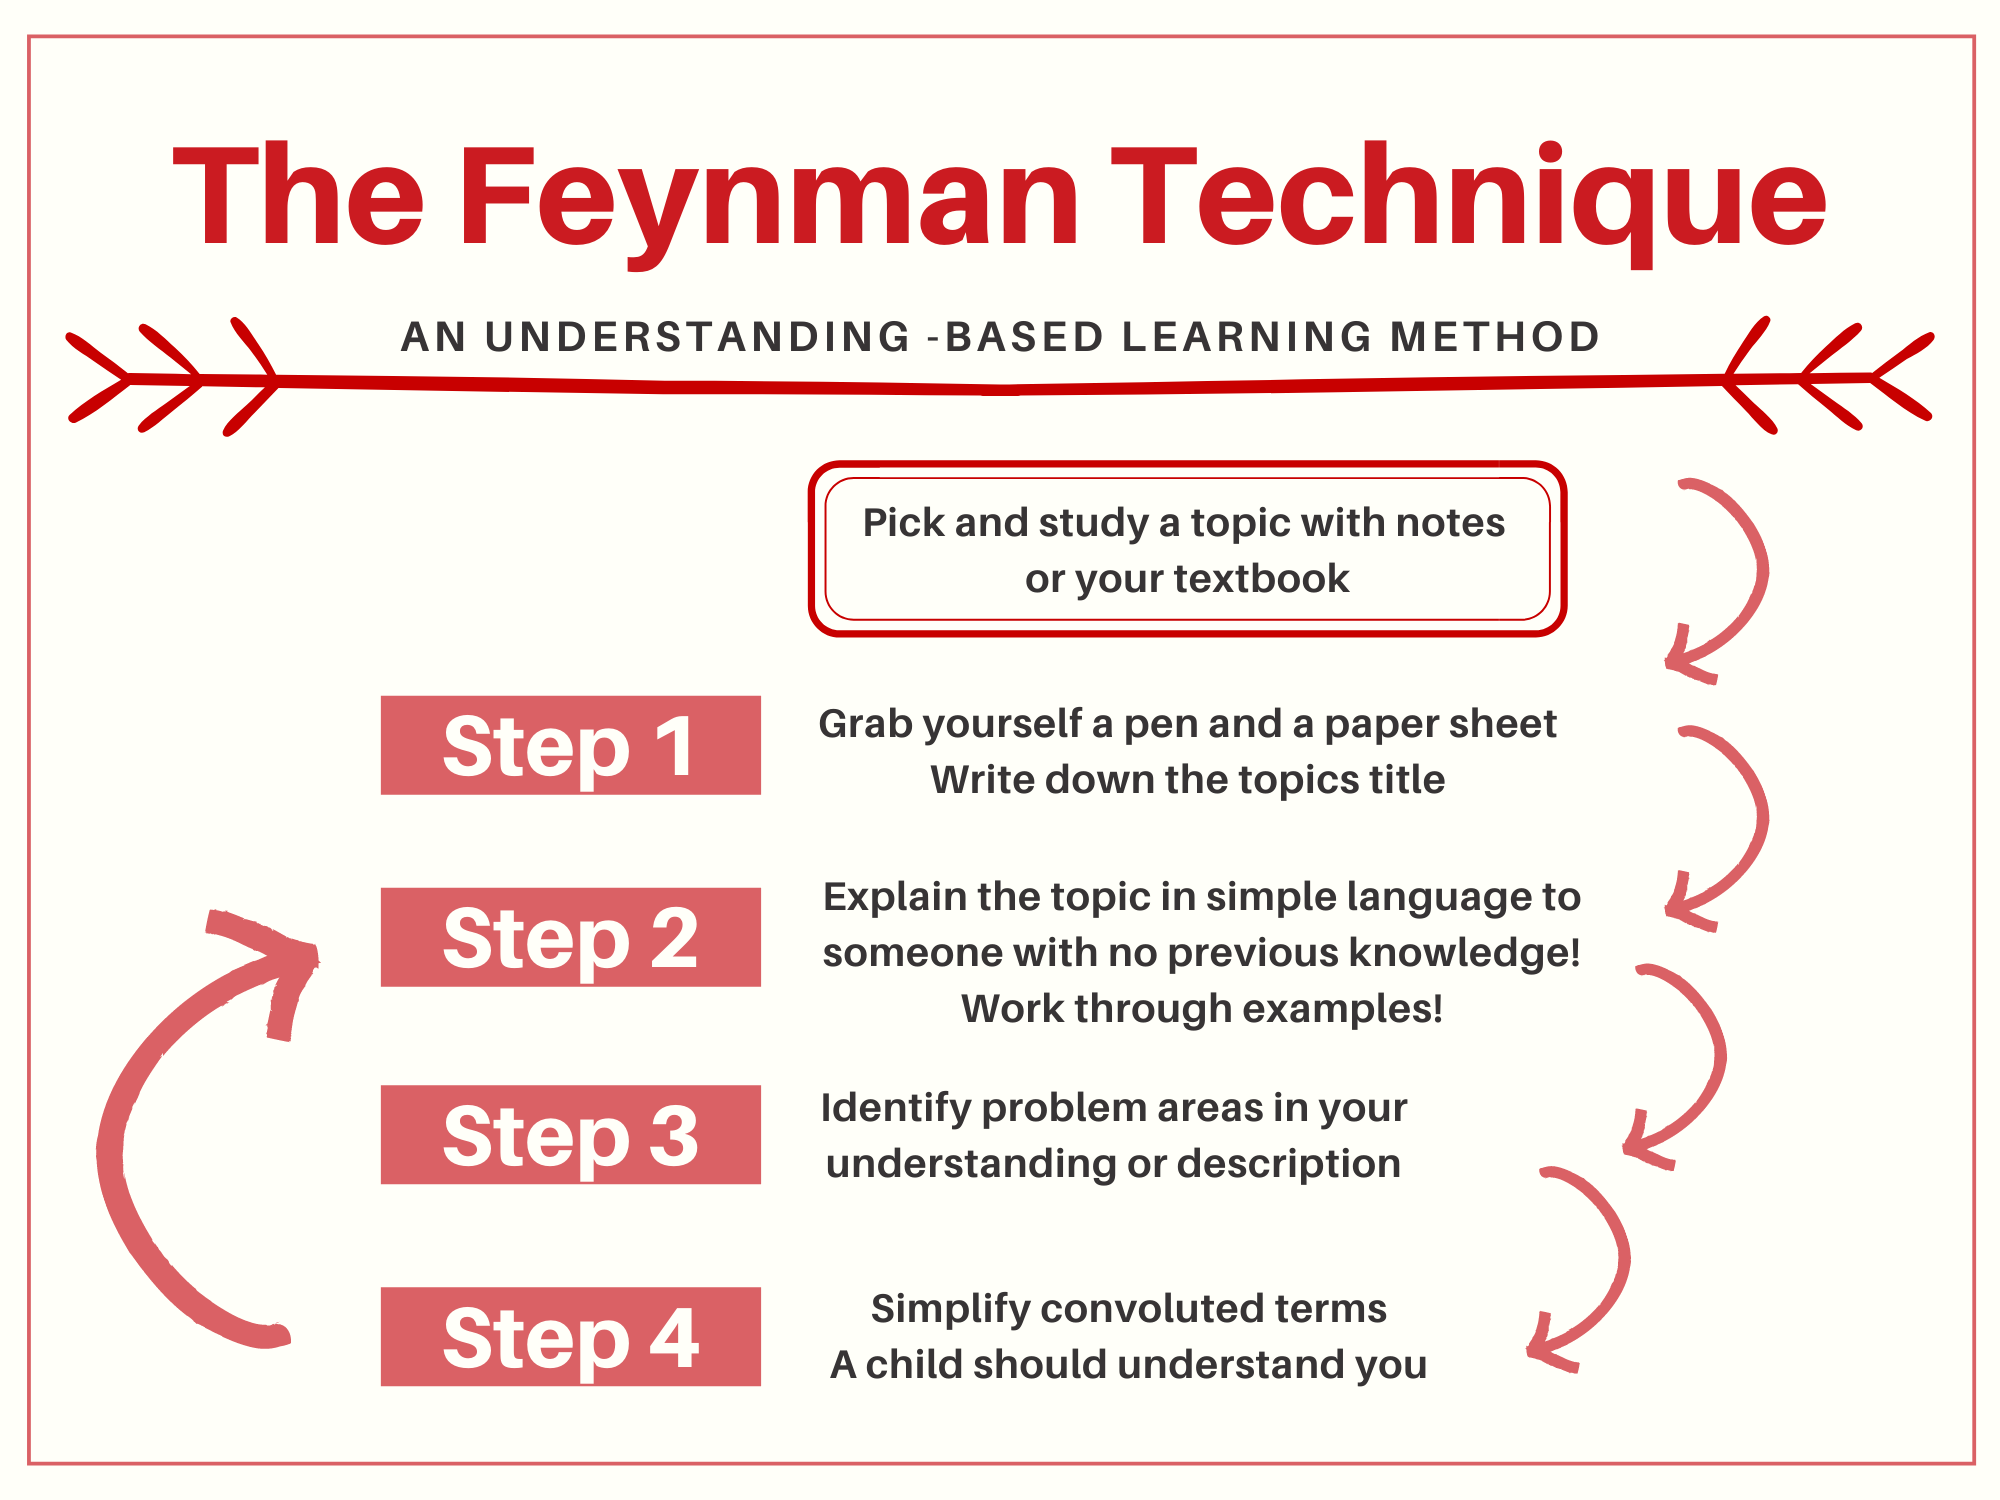 Flowchart of how to apply the Feynman Technique